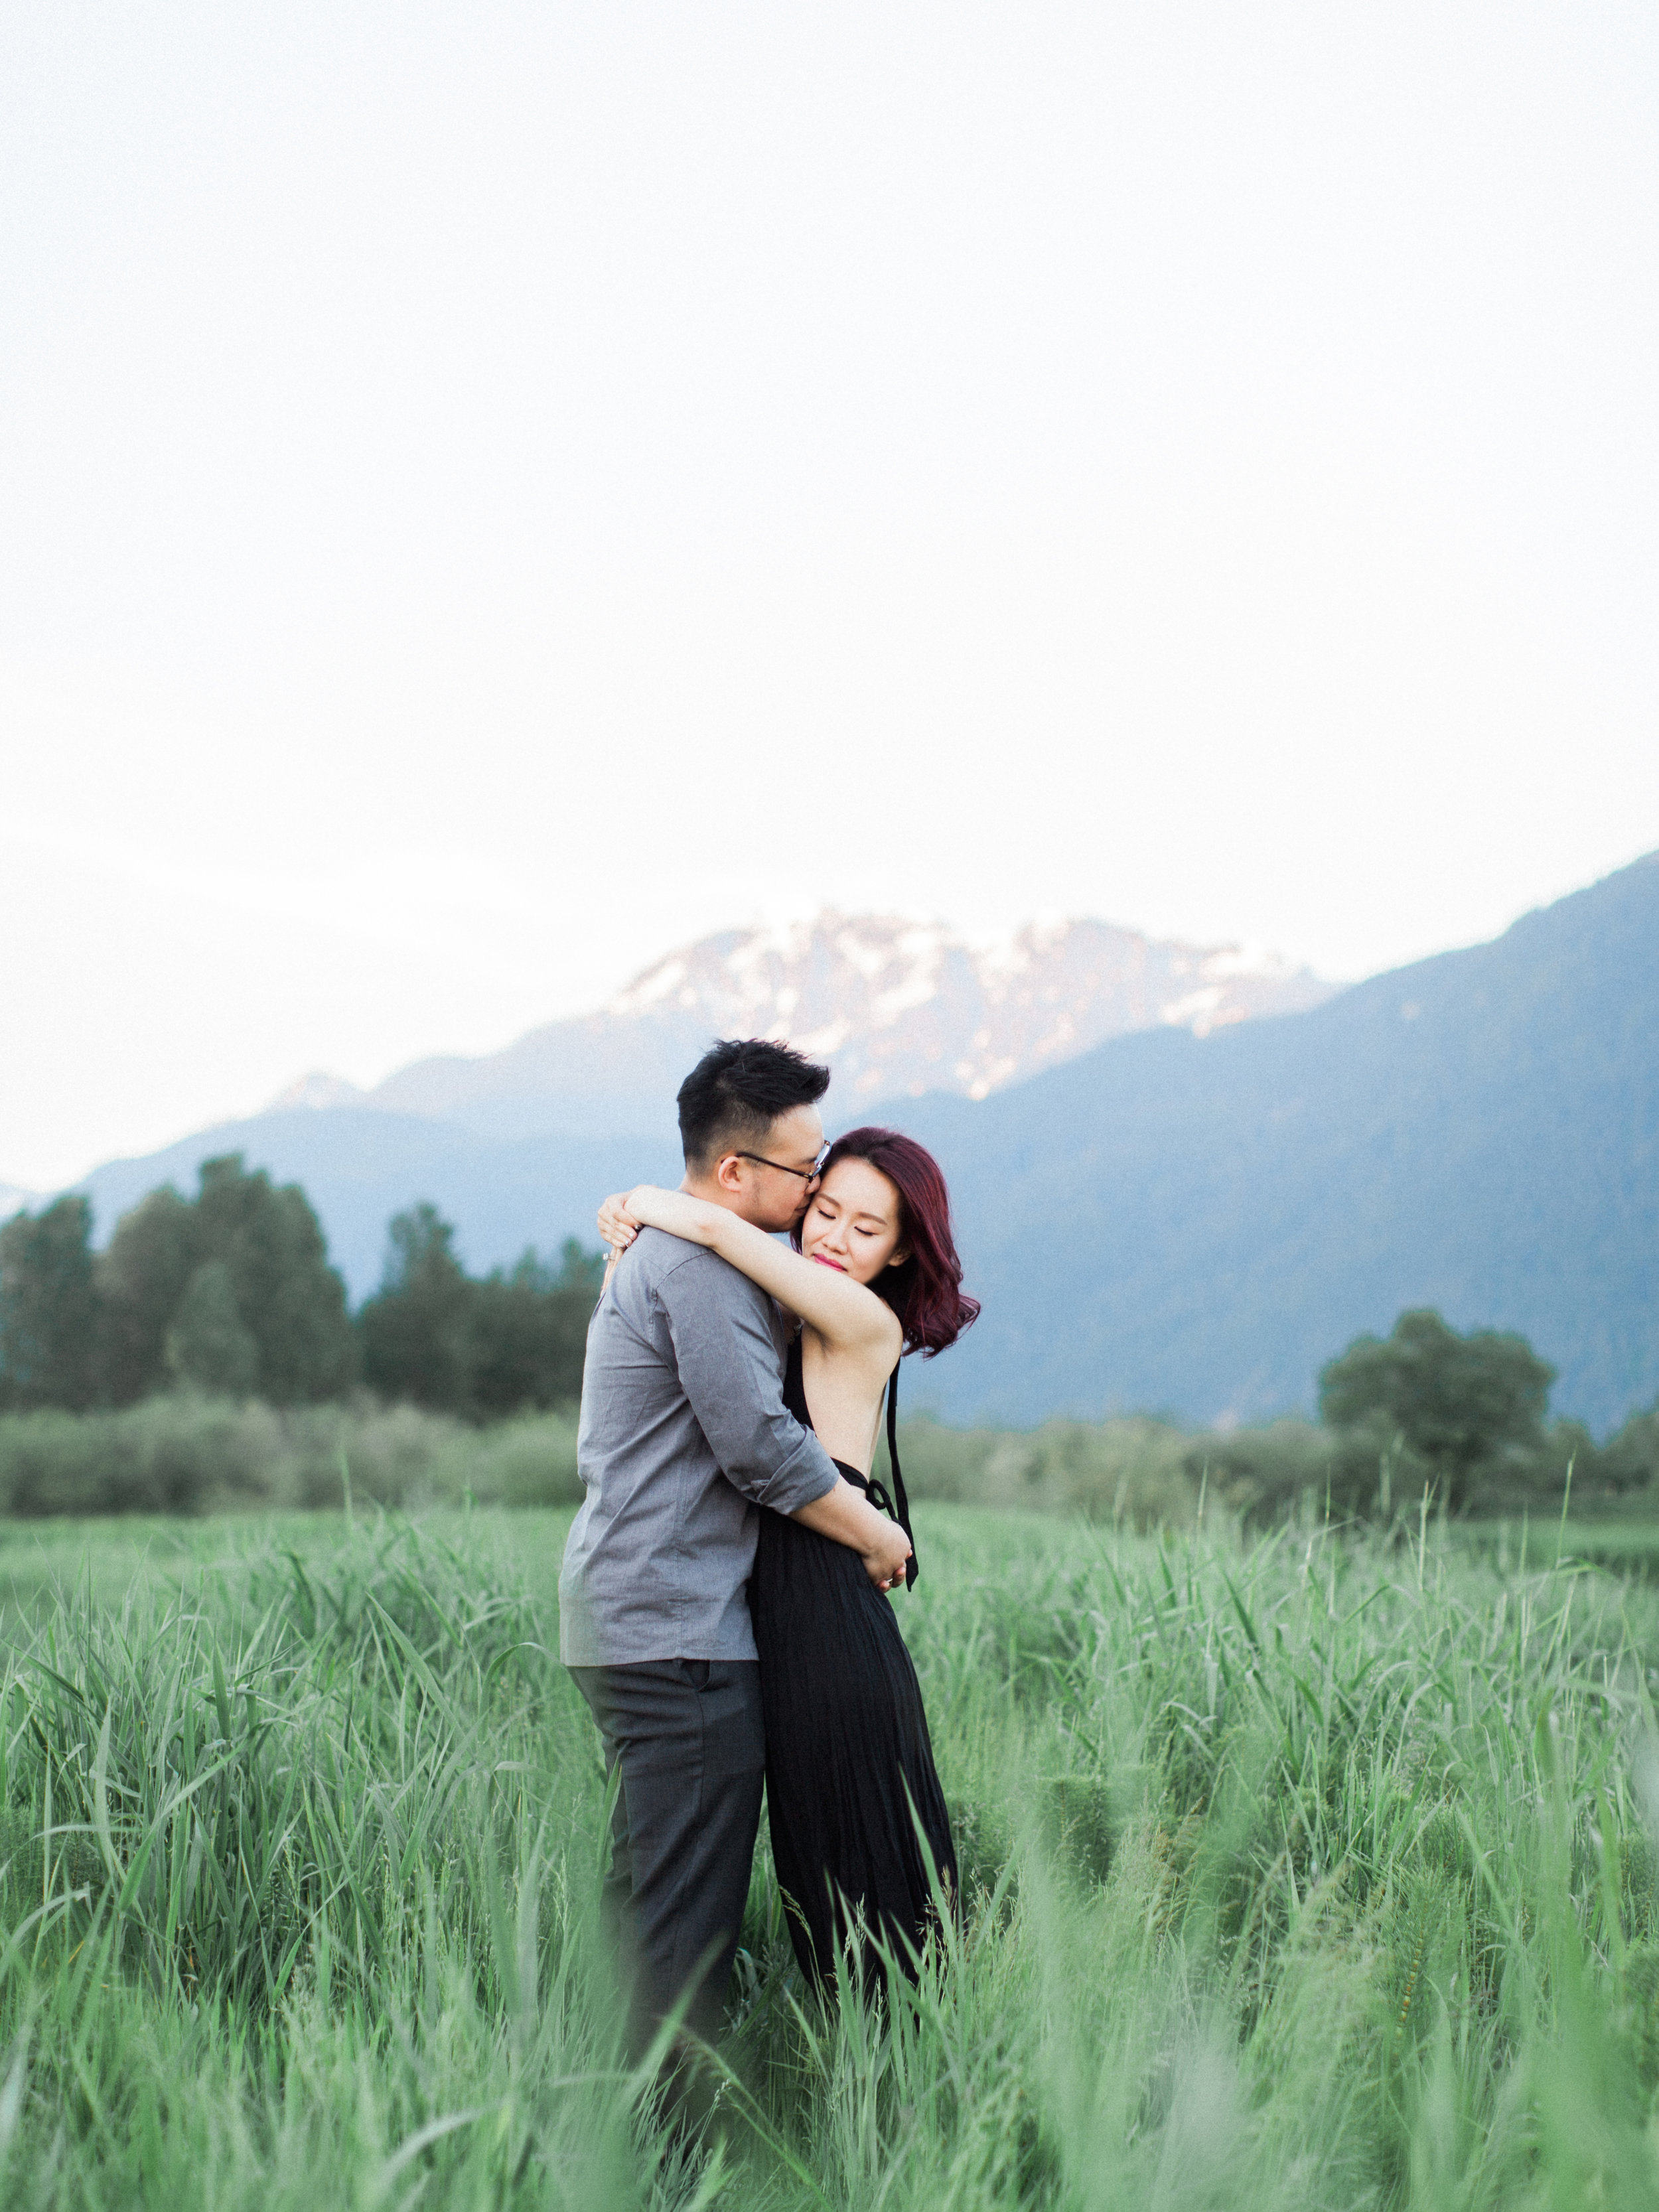 20170528Maple_Ridge_Engagement_Mary_Marco_Prewedding-49 copy.jpg